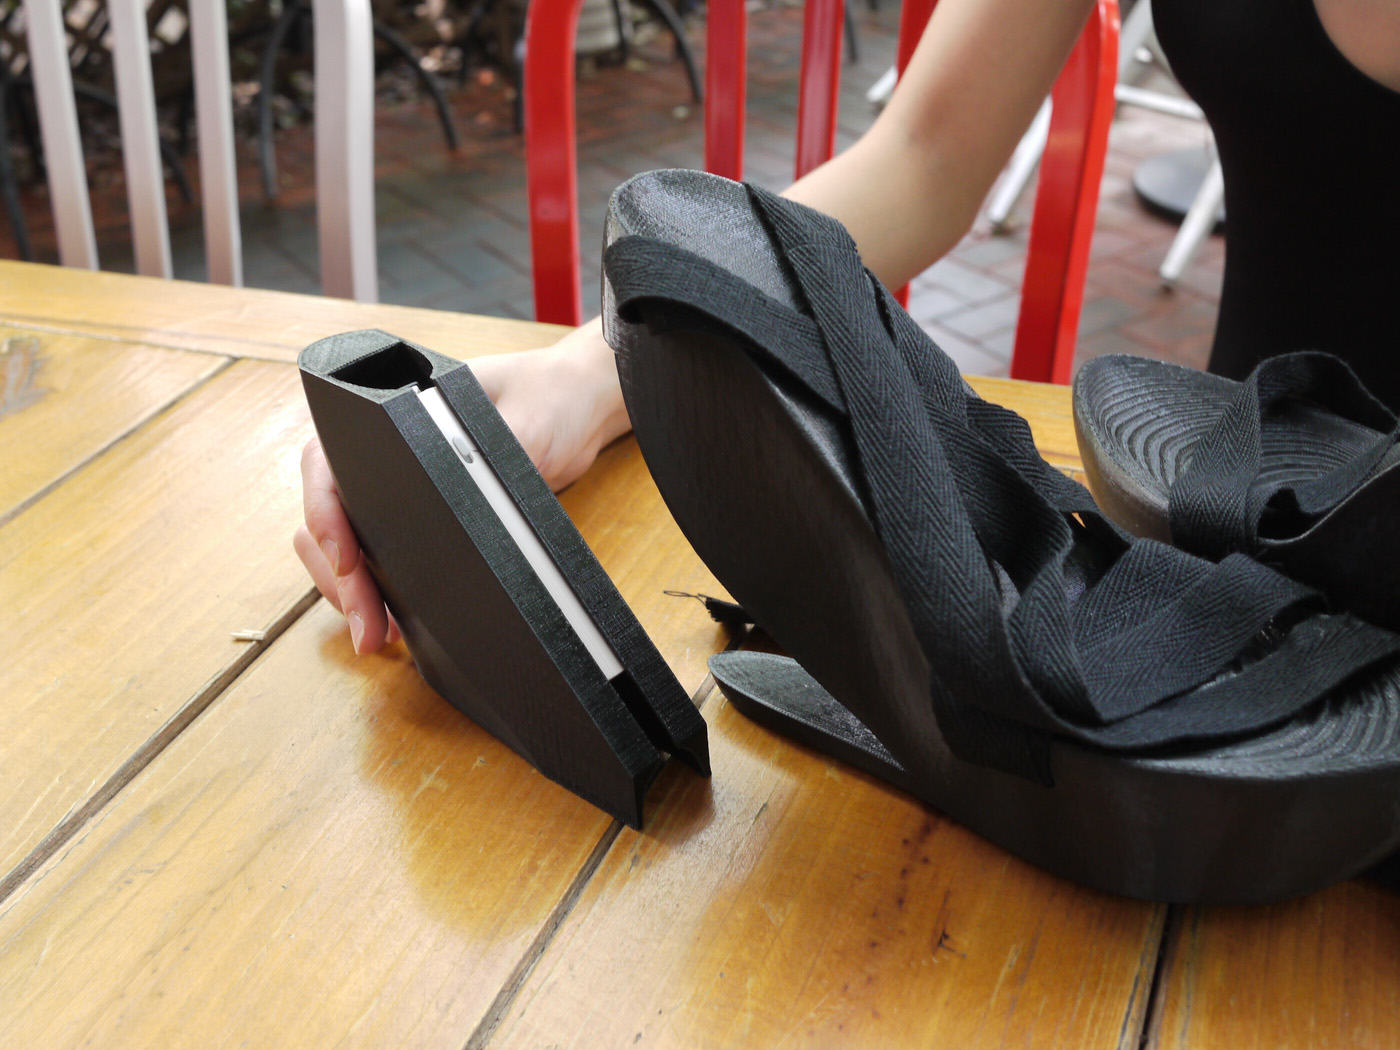 Chinese Engineer 'SexyCyborg' Hides Portable Hacking Kit In Her Platform Heels UNILAD 57